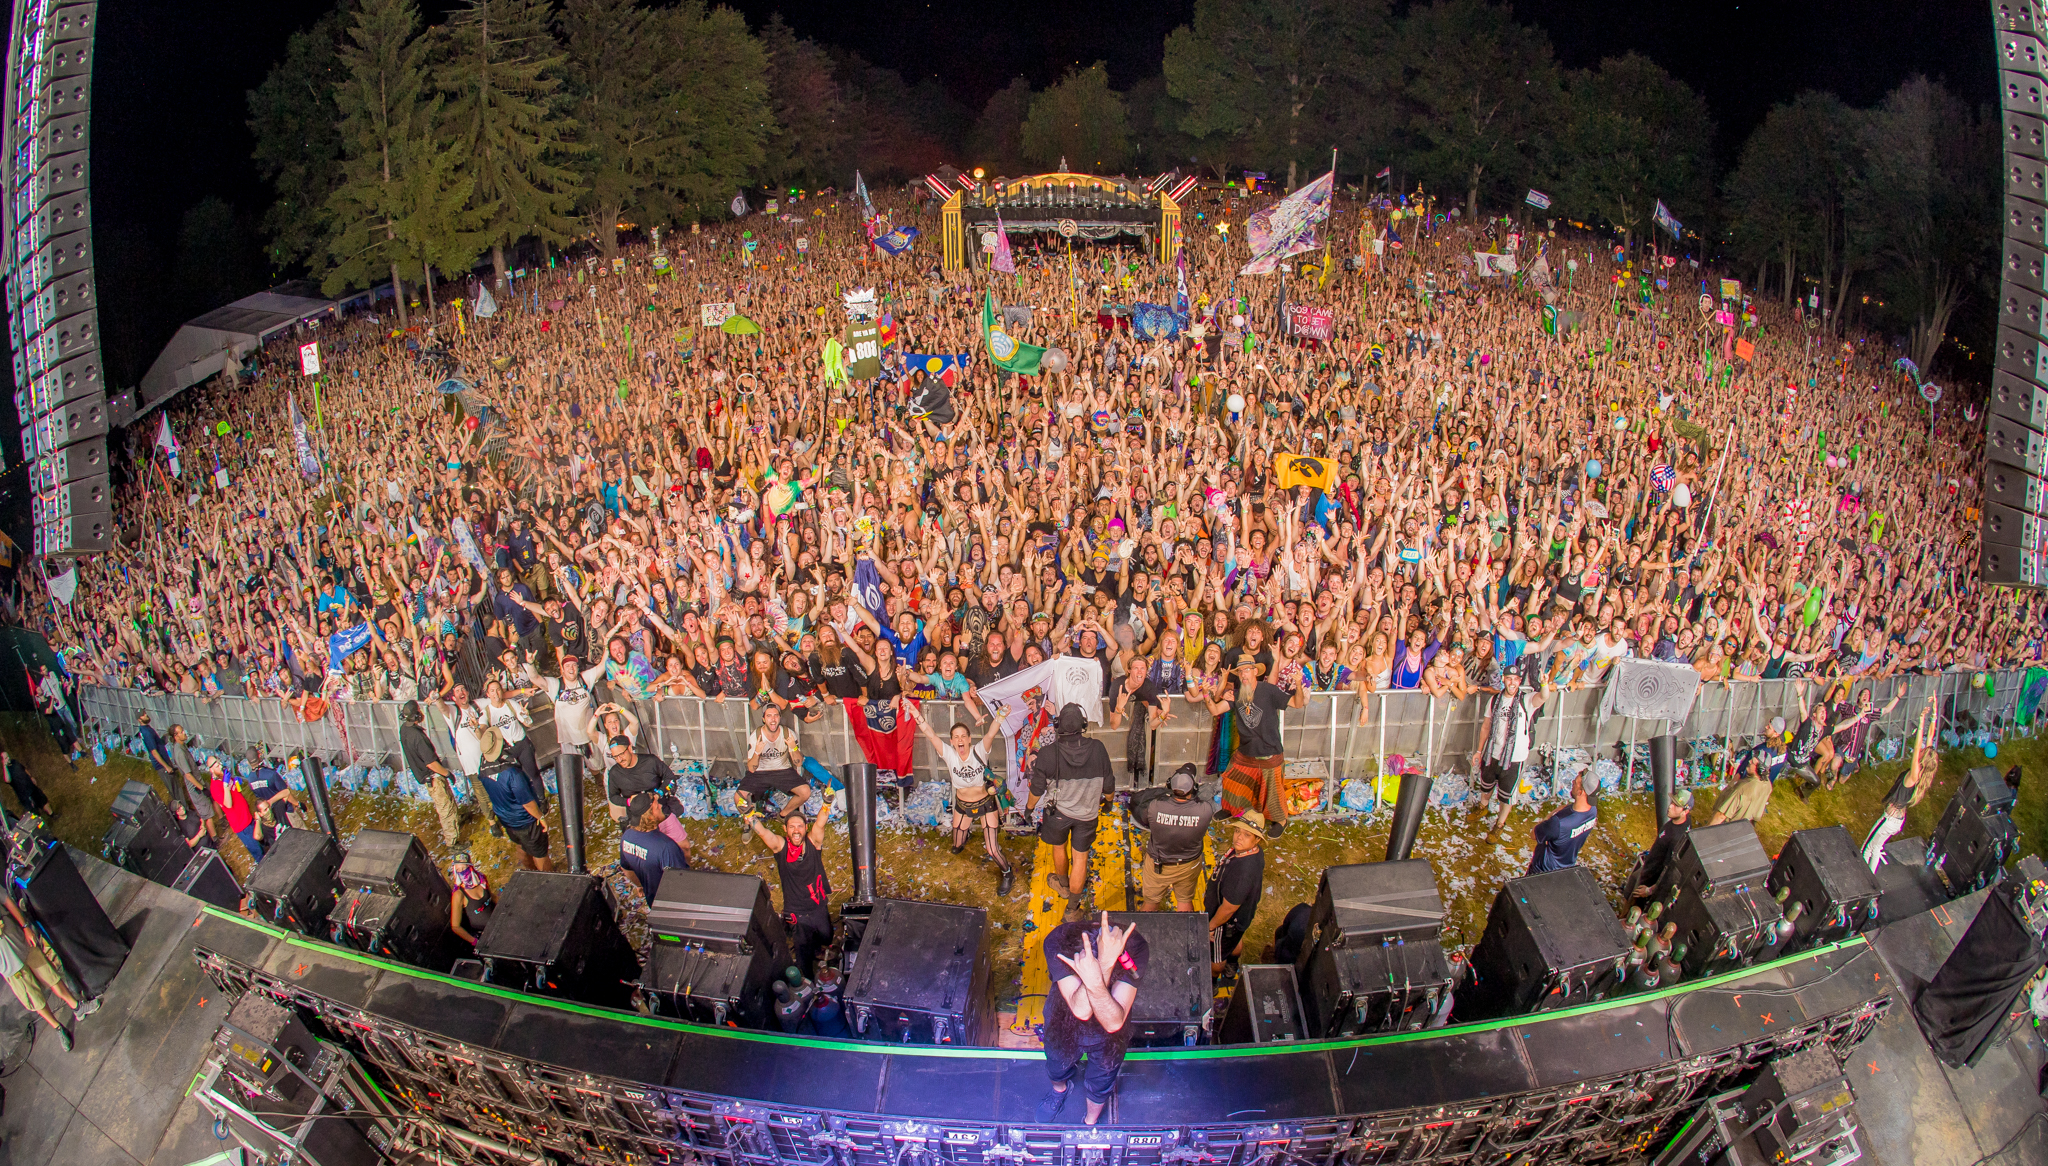 Bassnectar at Electric Forest 2018 Weekend 2